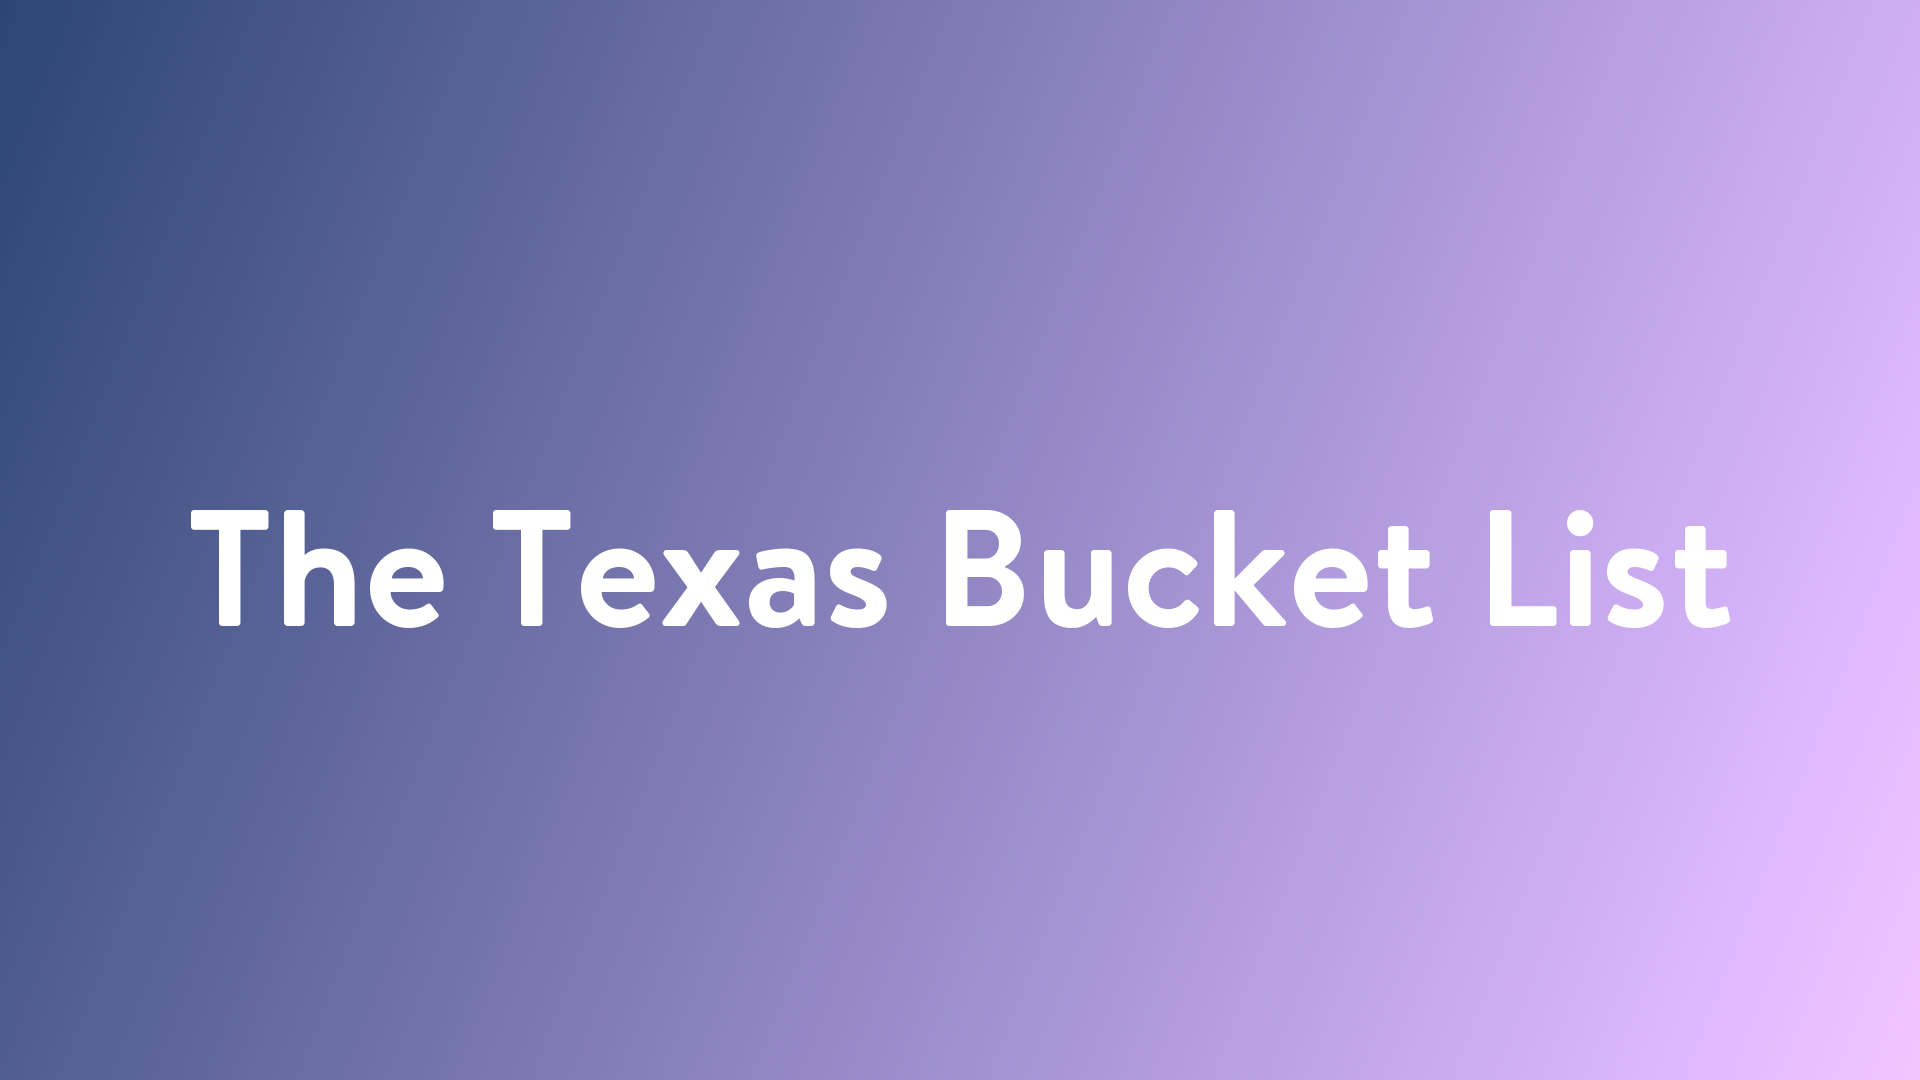 Stream And Watch The Texas Bucket List Online Sling Tv